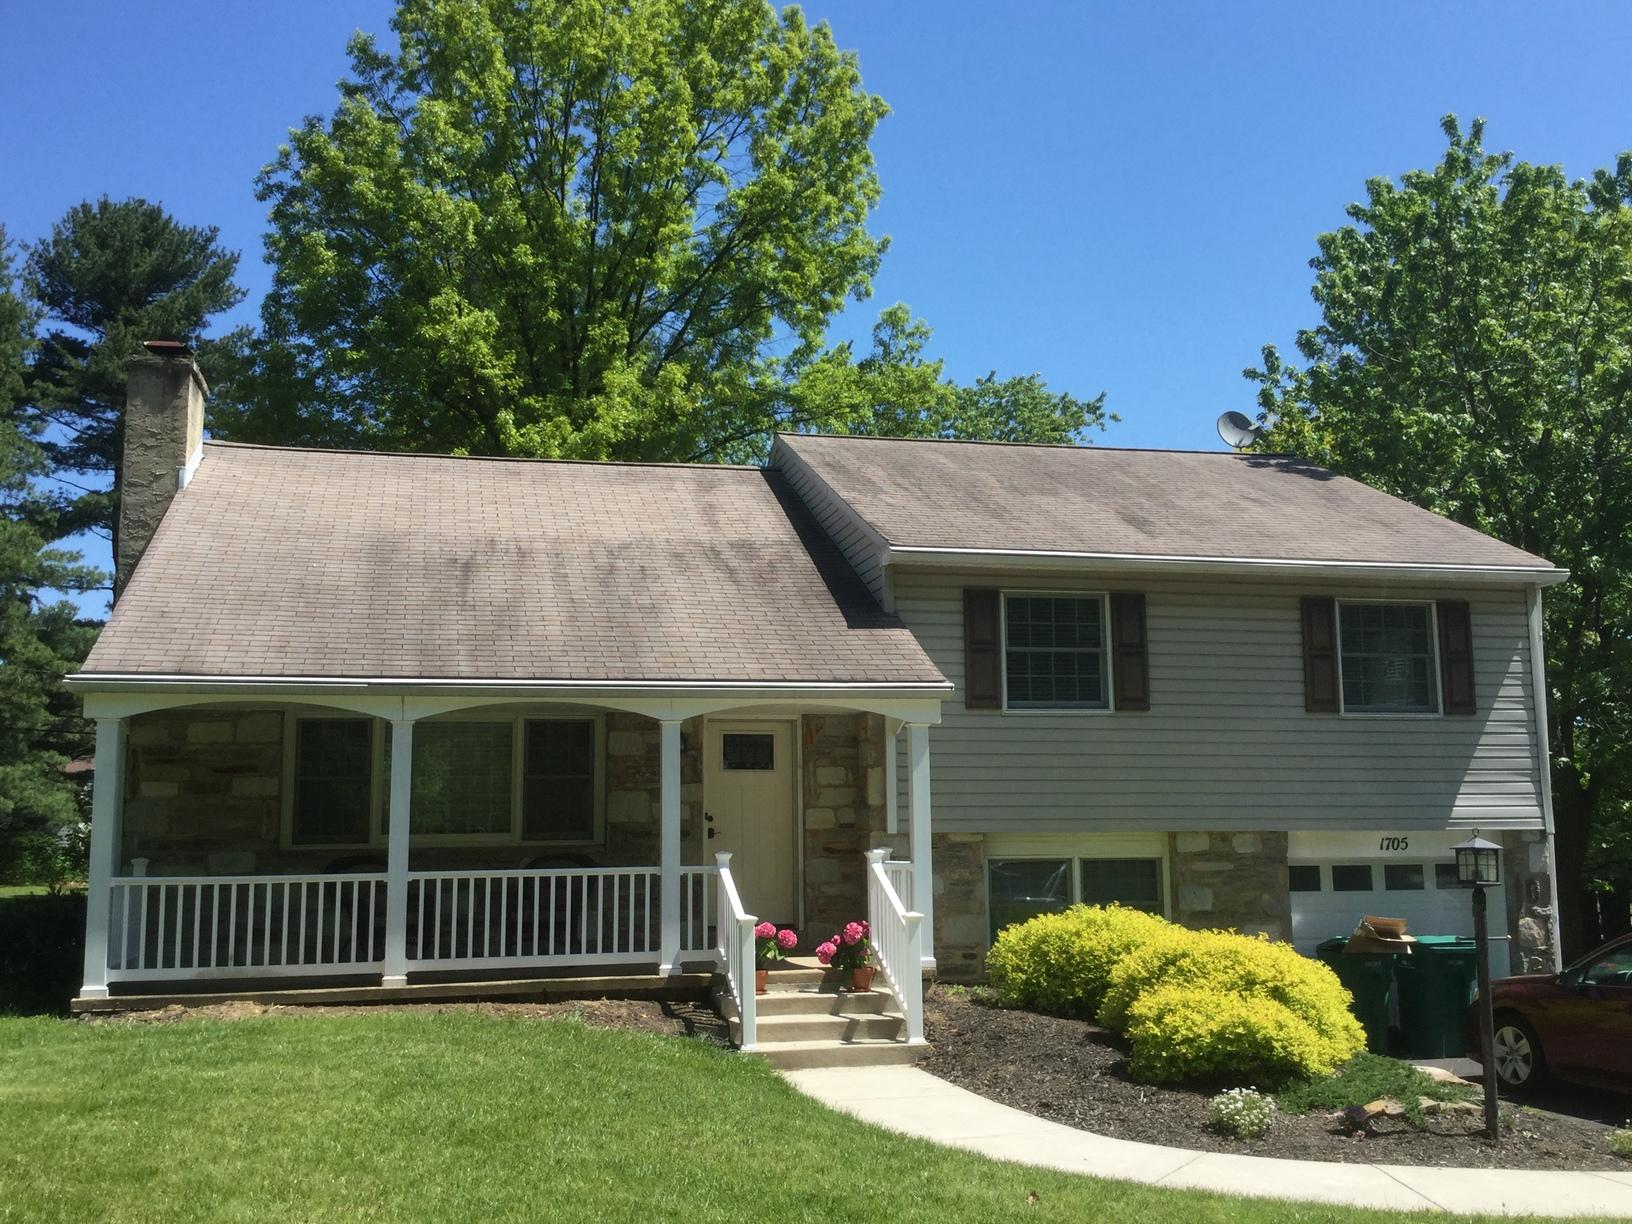 Roof Replacement in North Wales, PA - Before Photo